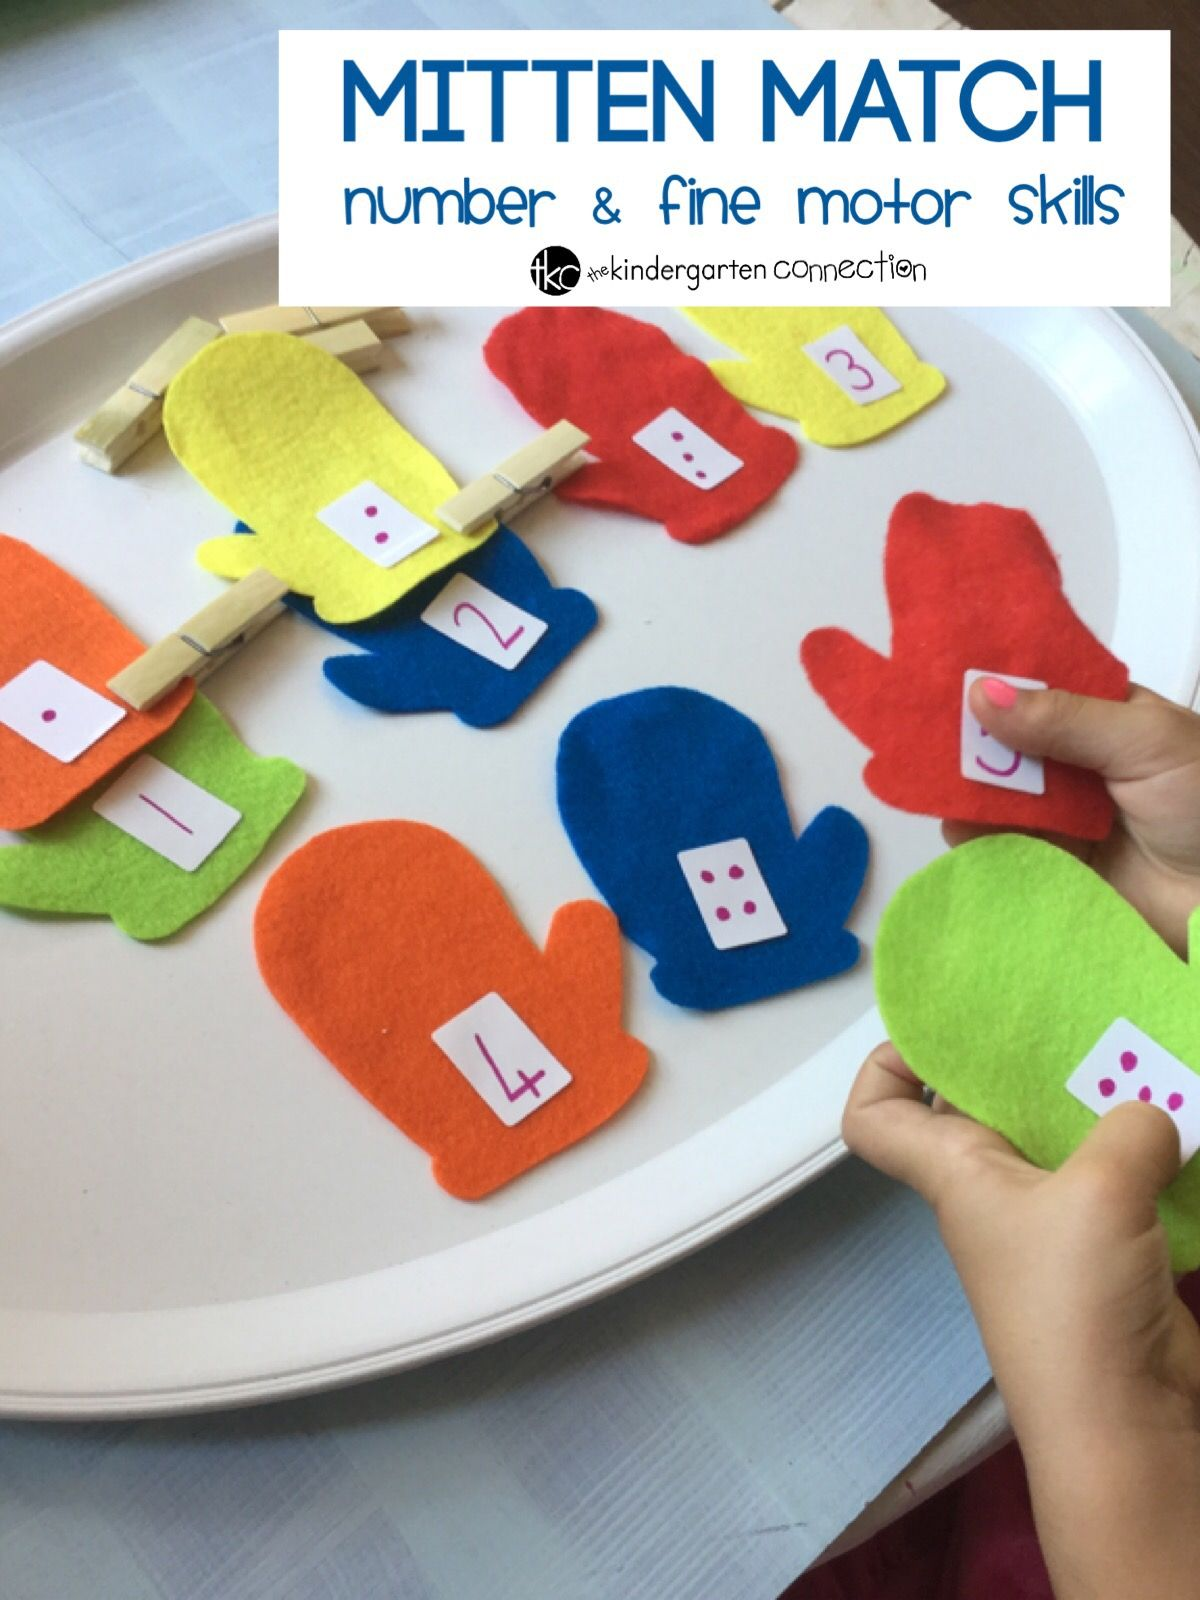 mitten match number and fine motor skills 3 6 year olds awesome learning activities. Black Bedroom Furniture Sets. Home Design Ideas